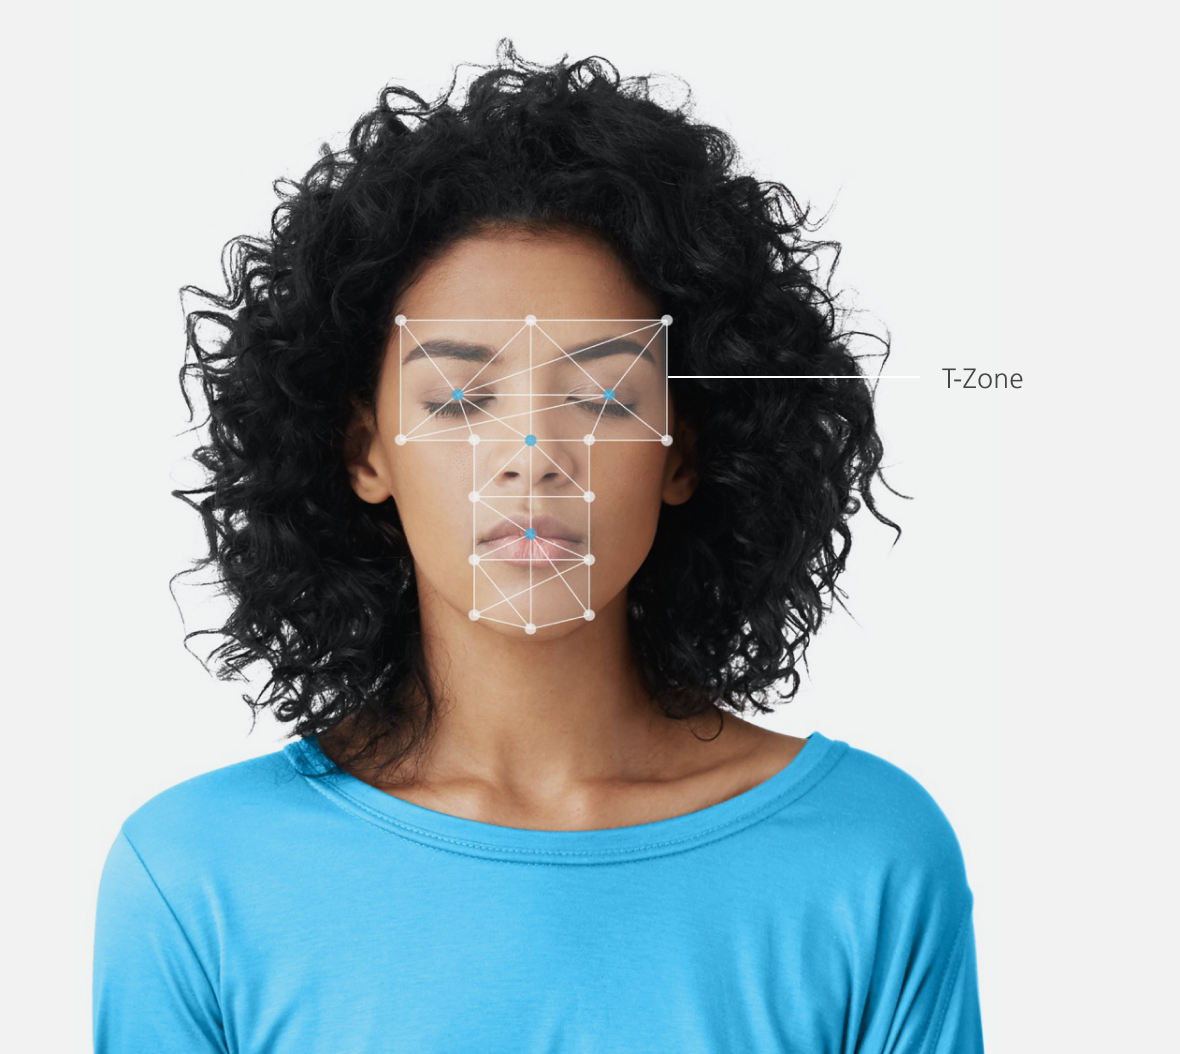 T-Zone Graphic over Women's face